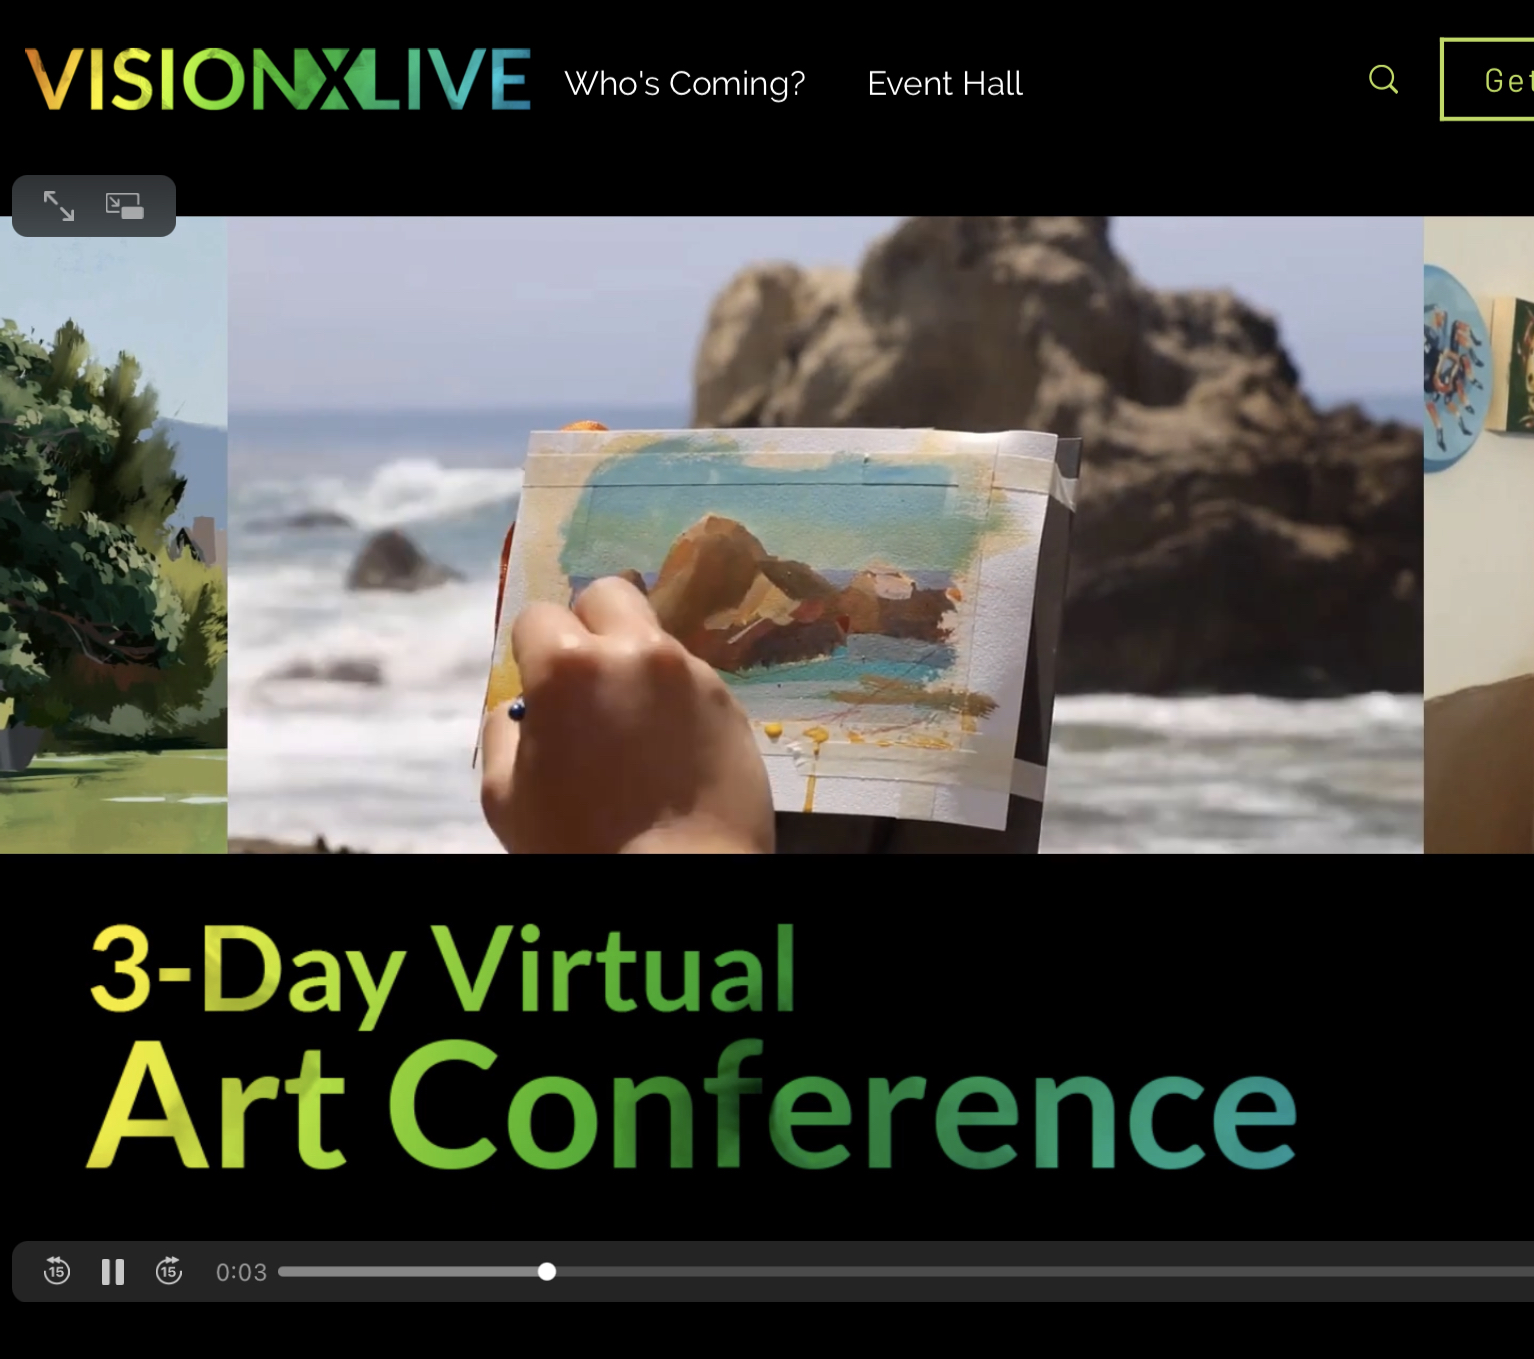 Vision X Live! – Amazing conference coming in July